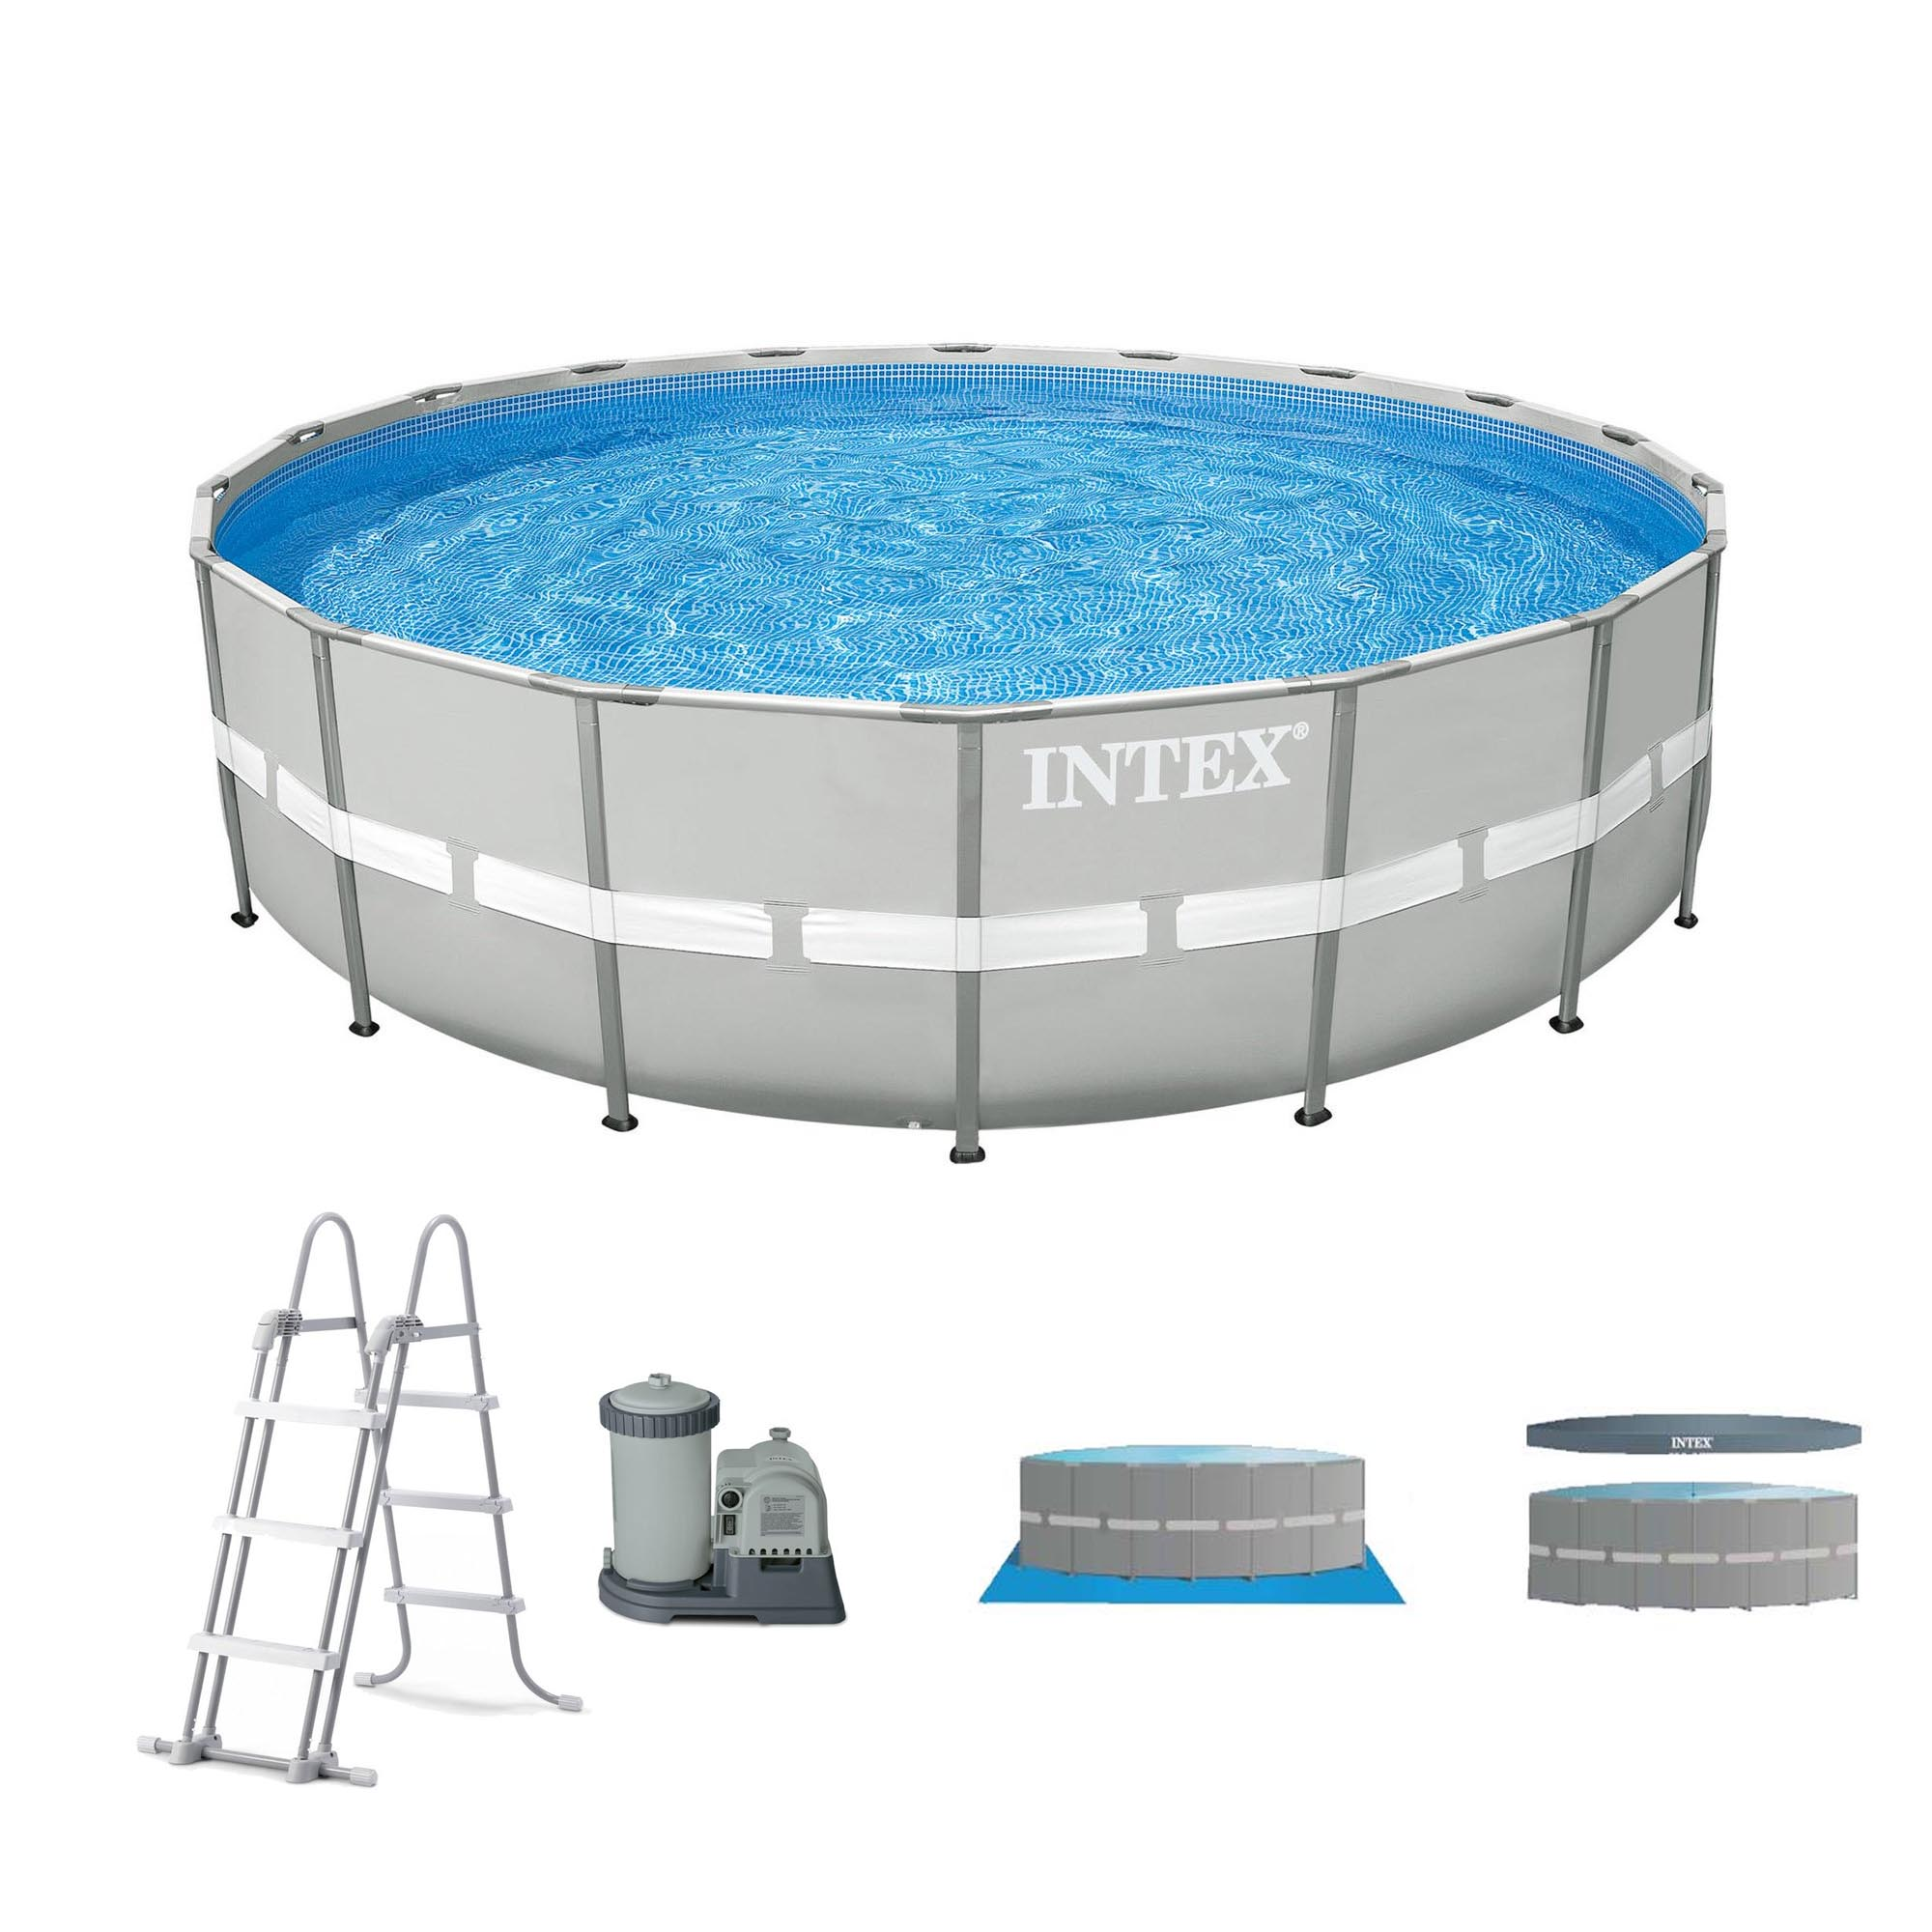 Intex 20 39 x 48 ultra frame above ground swimming pool set for Billige pool sets